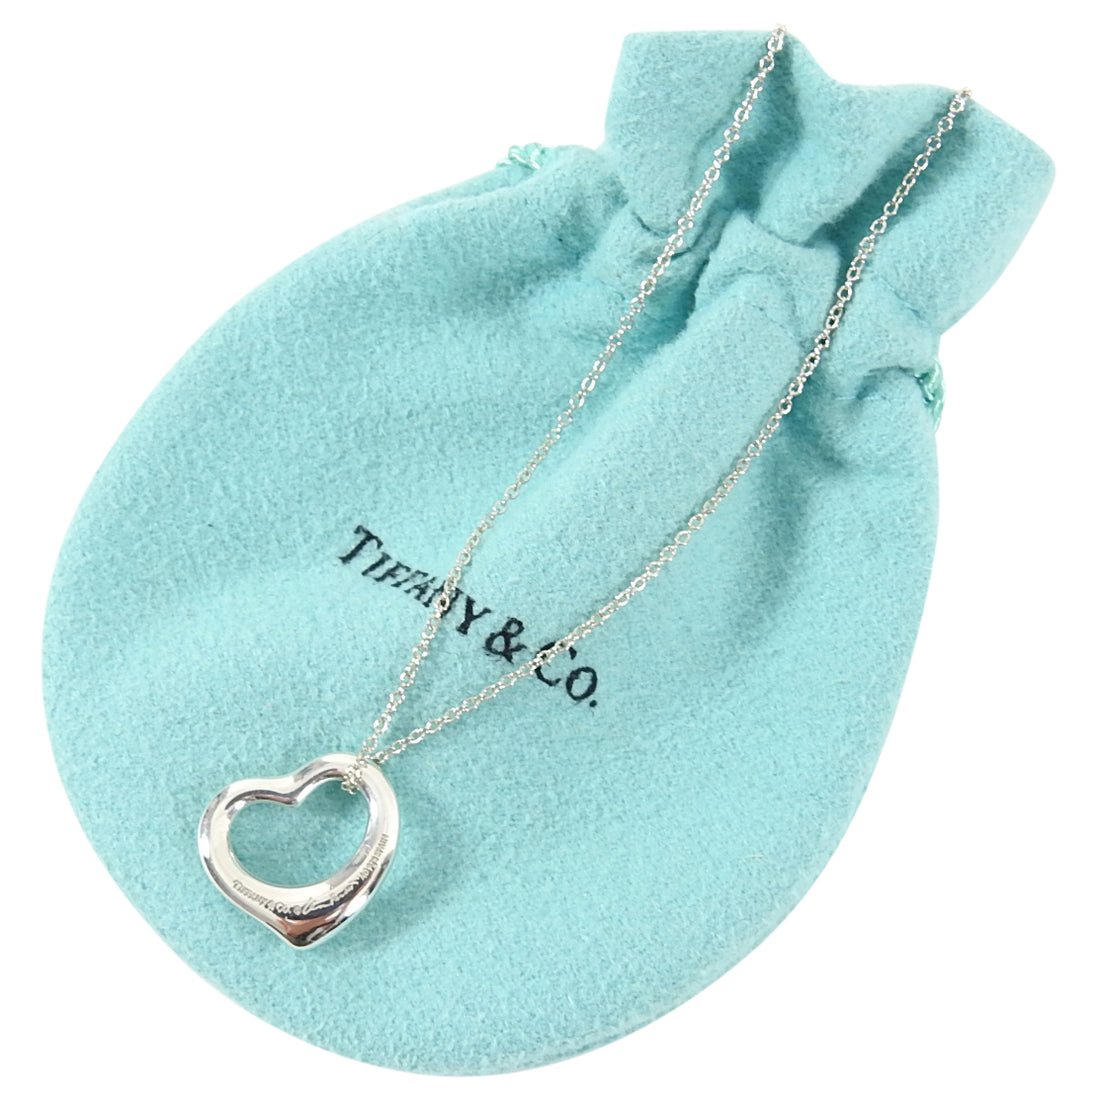 Tiffany and Co. Elsa Peretti Sterling Silver Open Heart Pendant Necklace